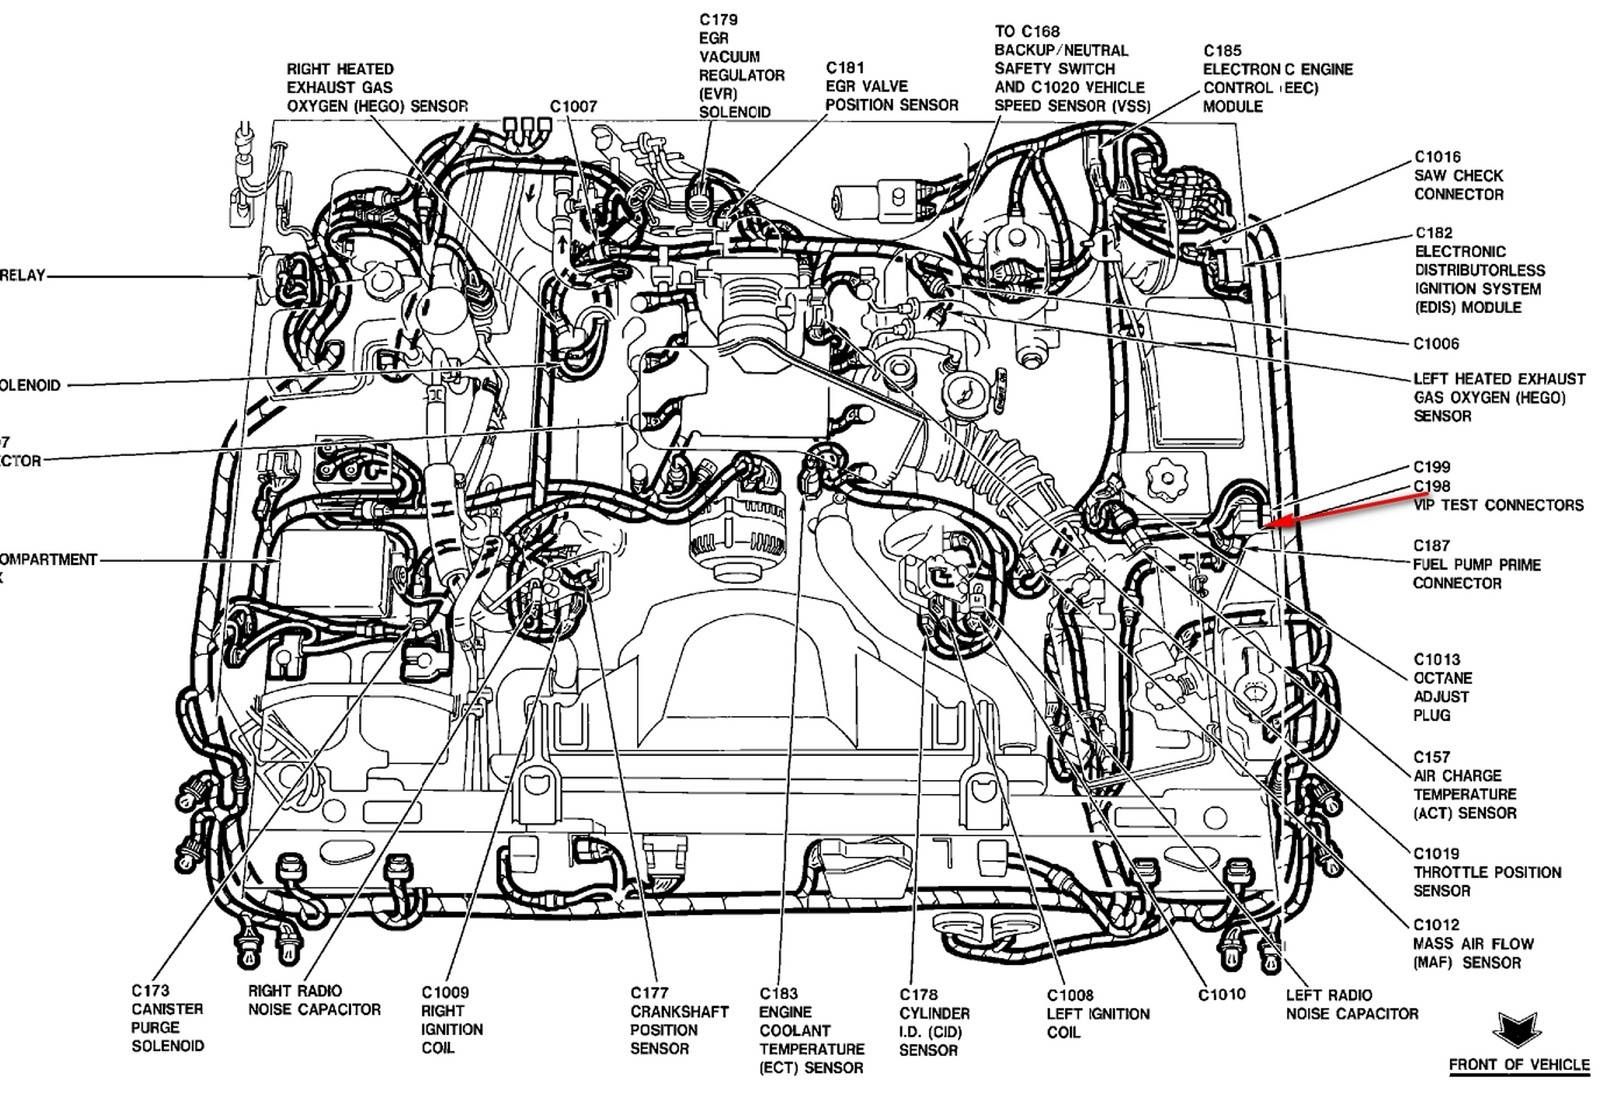 2005 chevy tahoe engine diagram wiring schematic diagram 2005 tahoe parts diagram 2005 chevrolet tahoe engine diagram #15